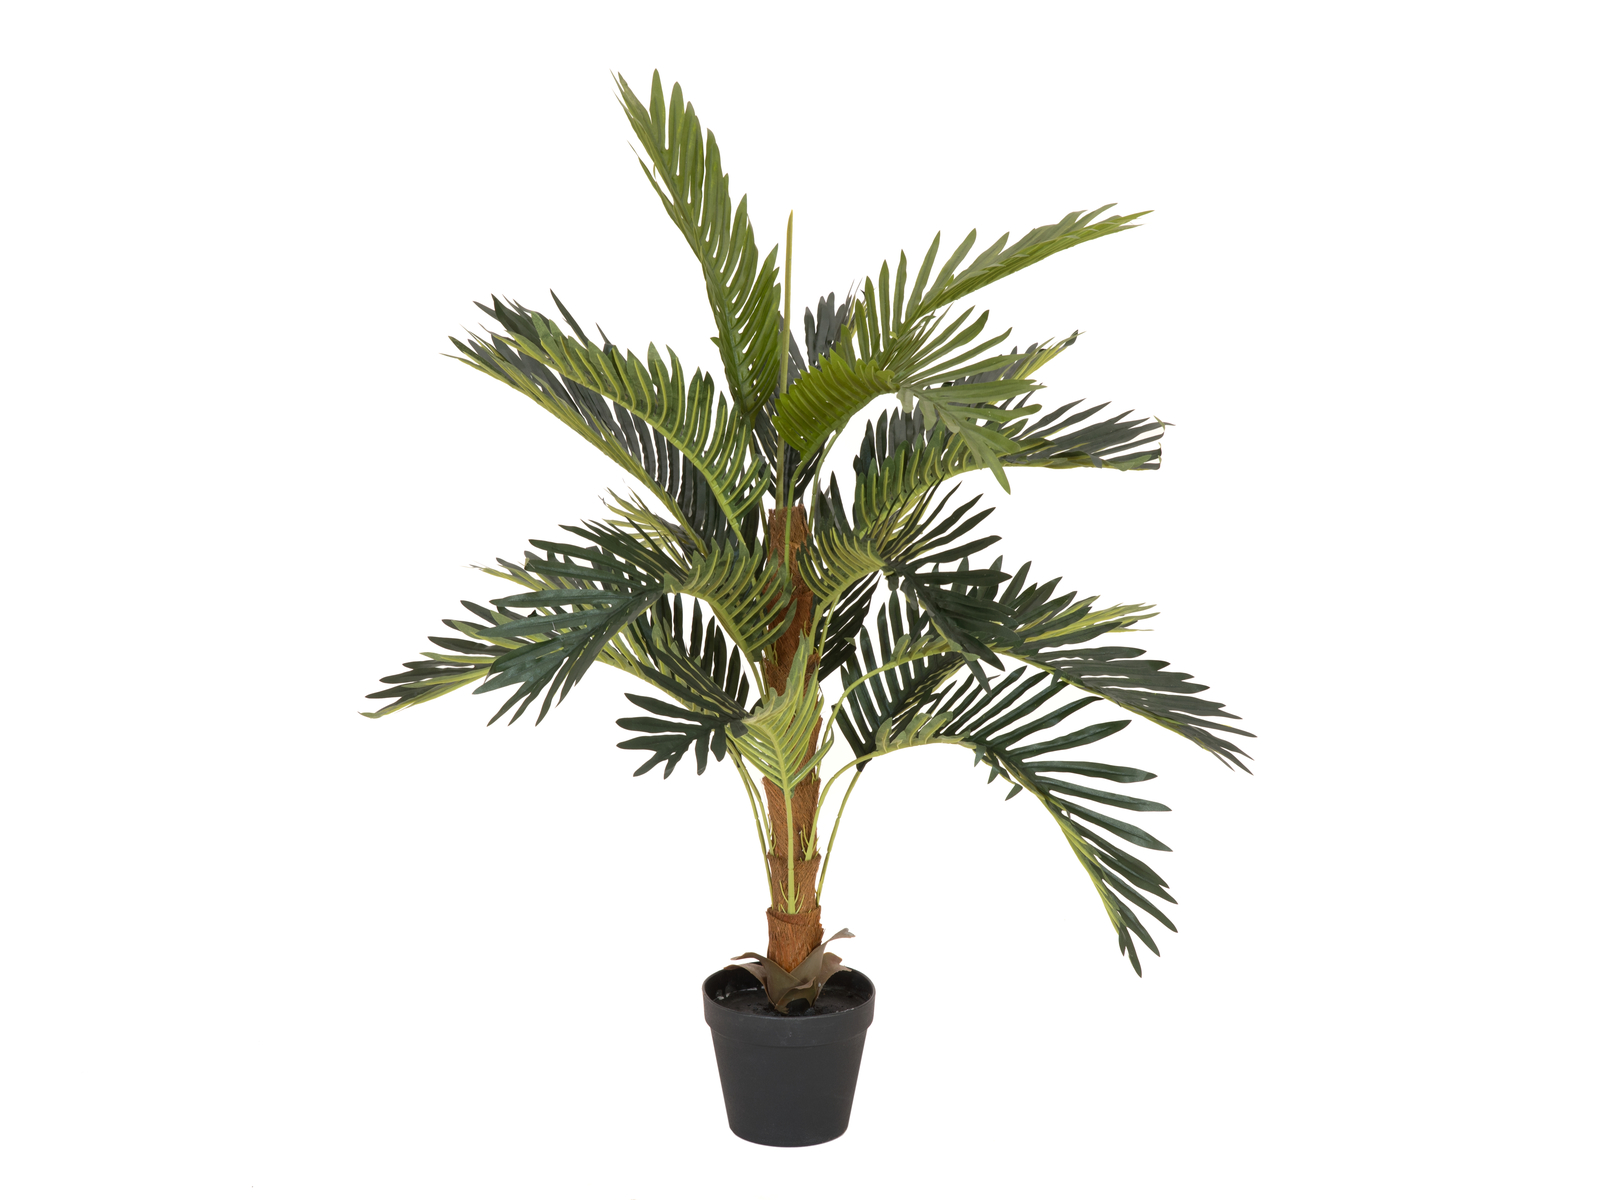 EUROPALMS pianta artificiale